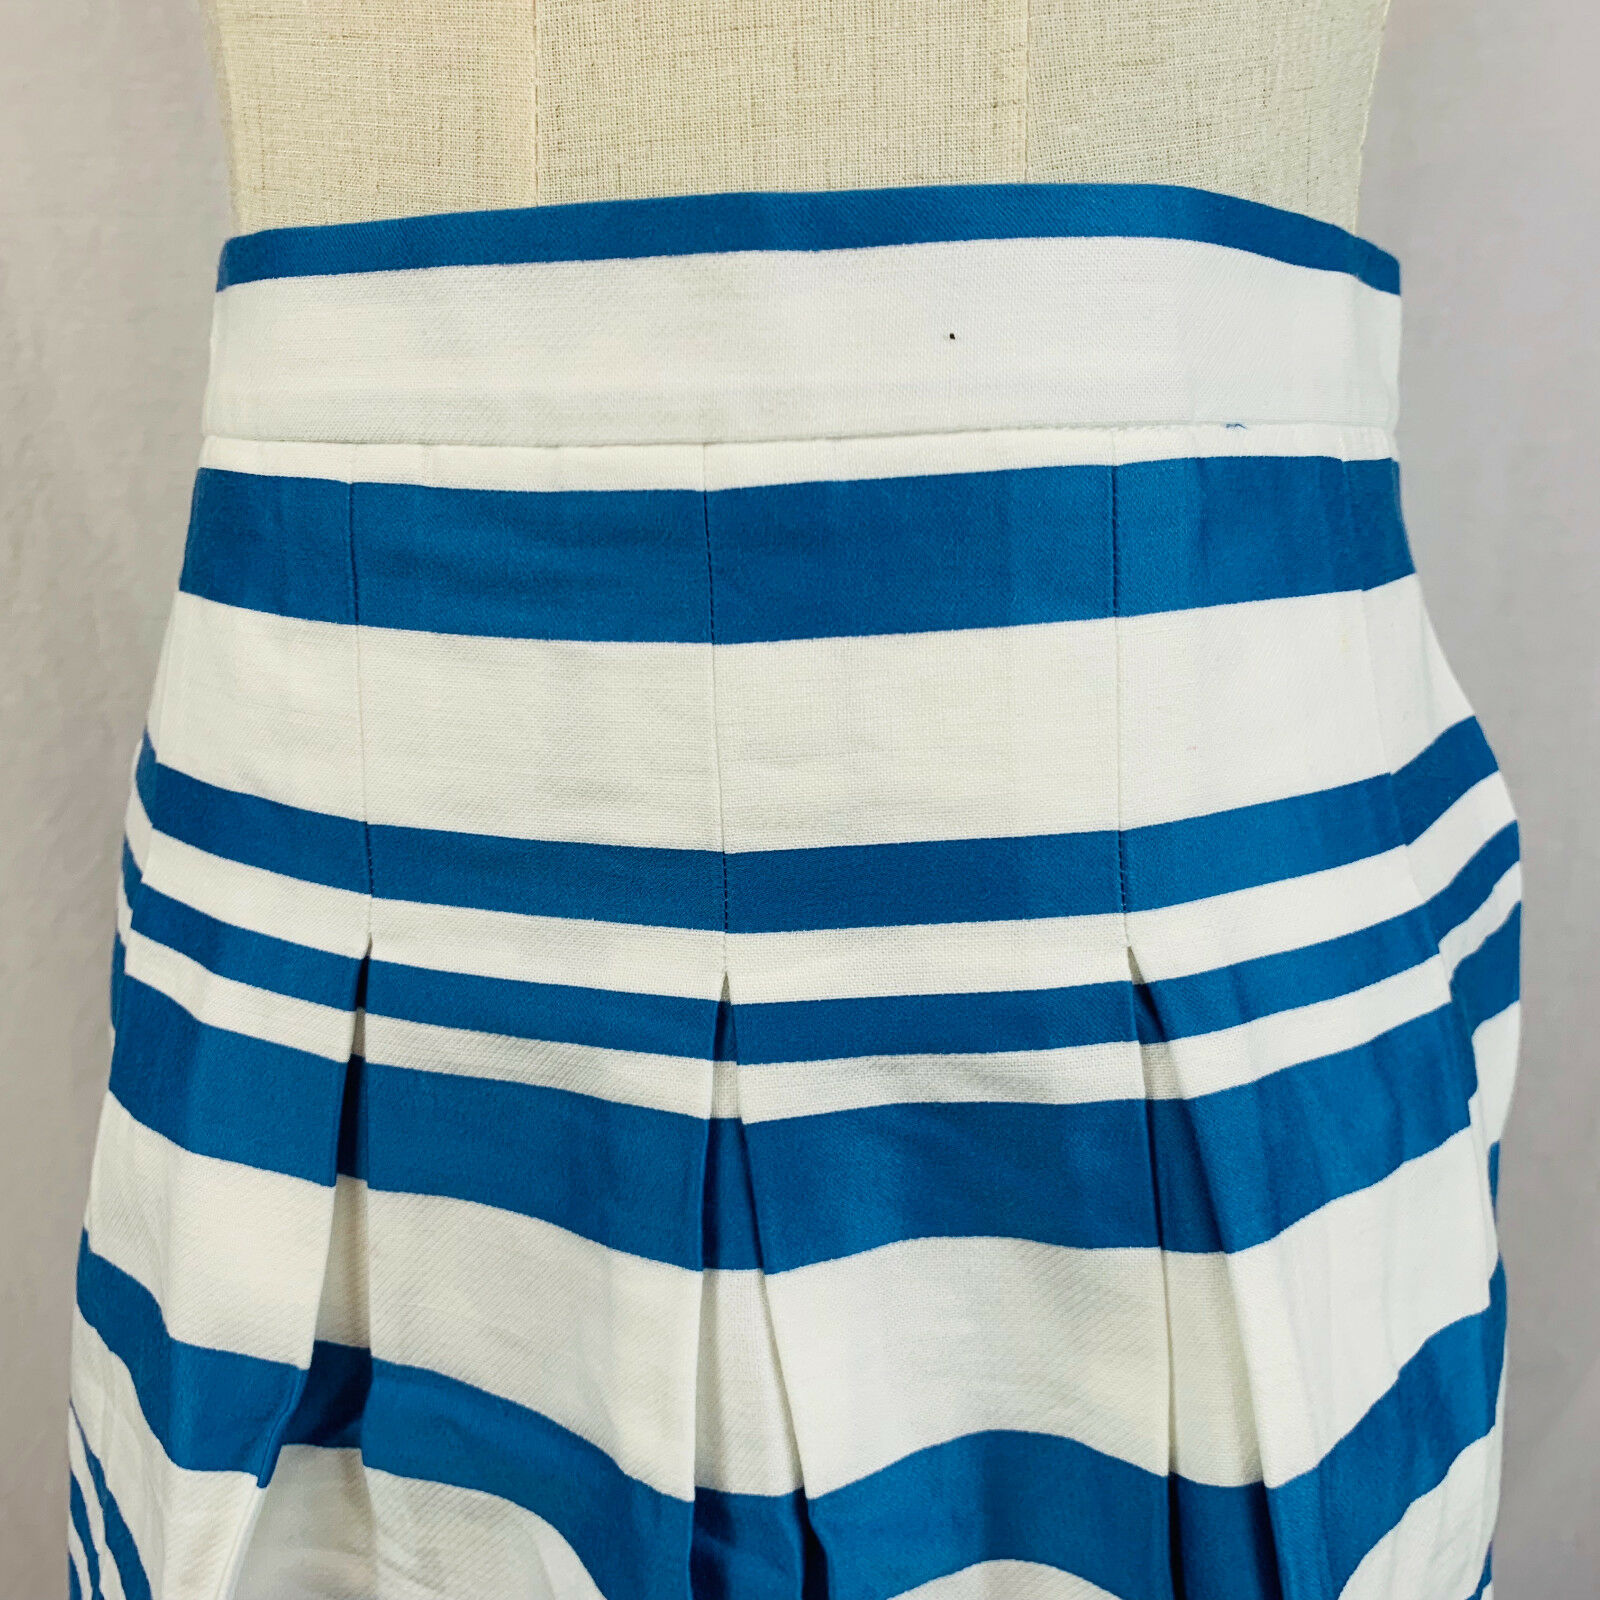 Ann Taylor Loft Petite Size 00 bluee Stripe Skirt Pleated Zip Closure Lined New